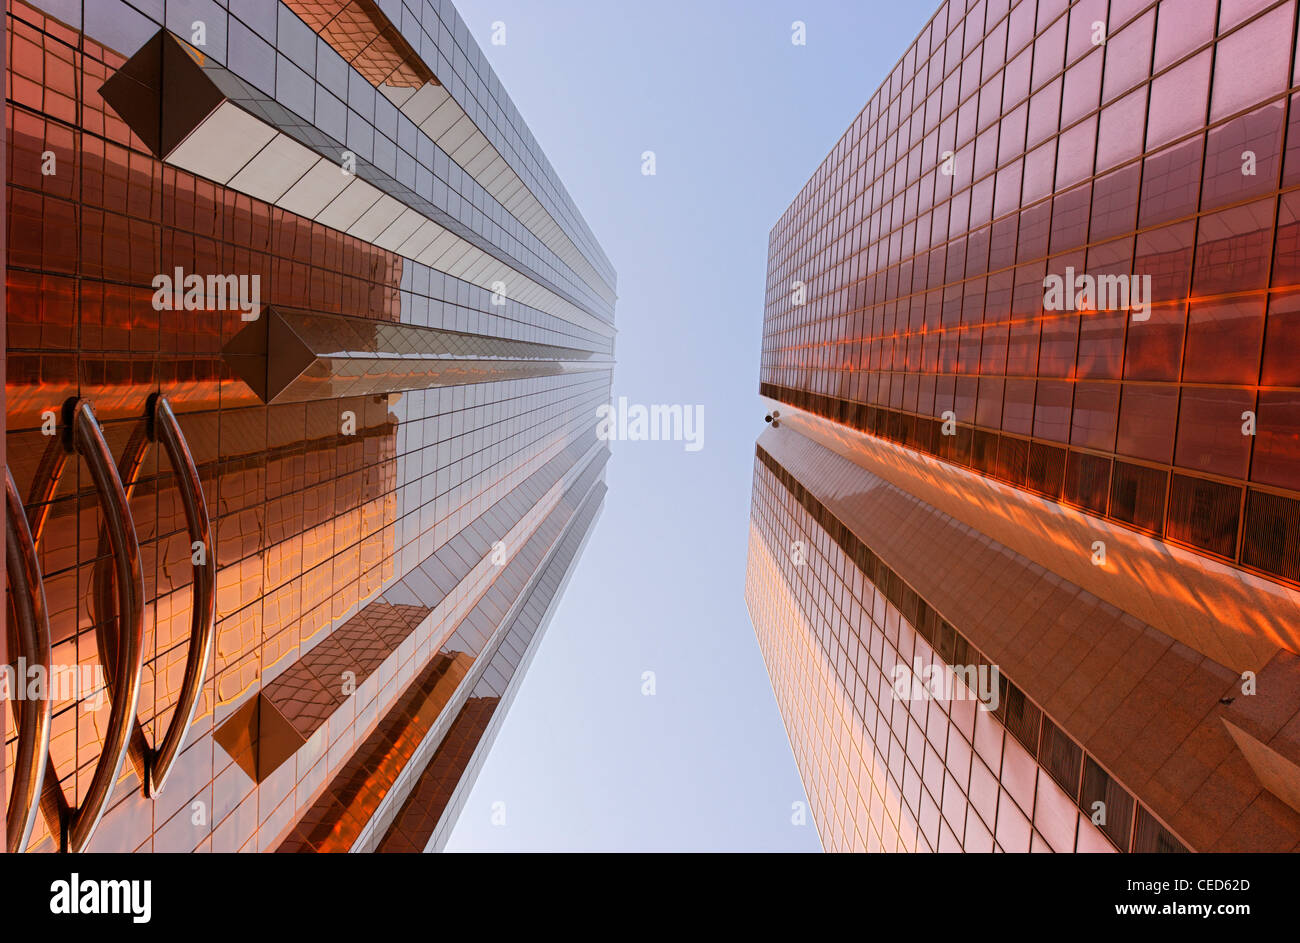 Copper-colored facades of office towers, modern architecture, Sheikh Zayed Road, Al Satwa, Dubai, United Arab Emirates Stock Photo